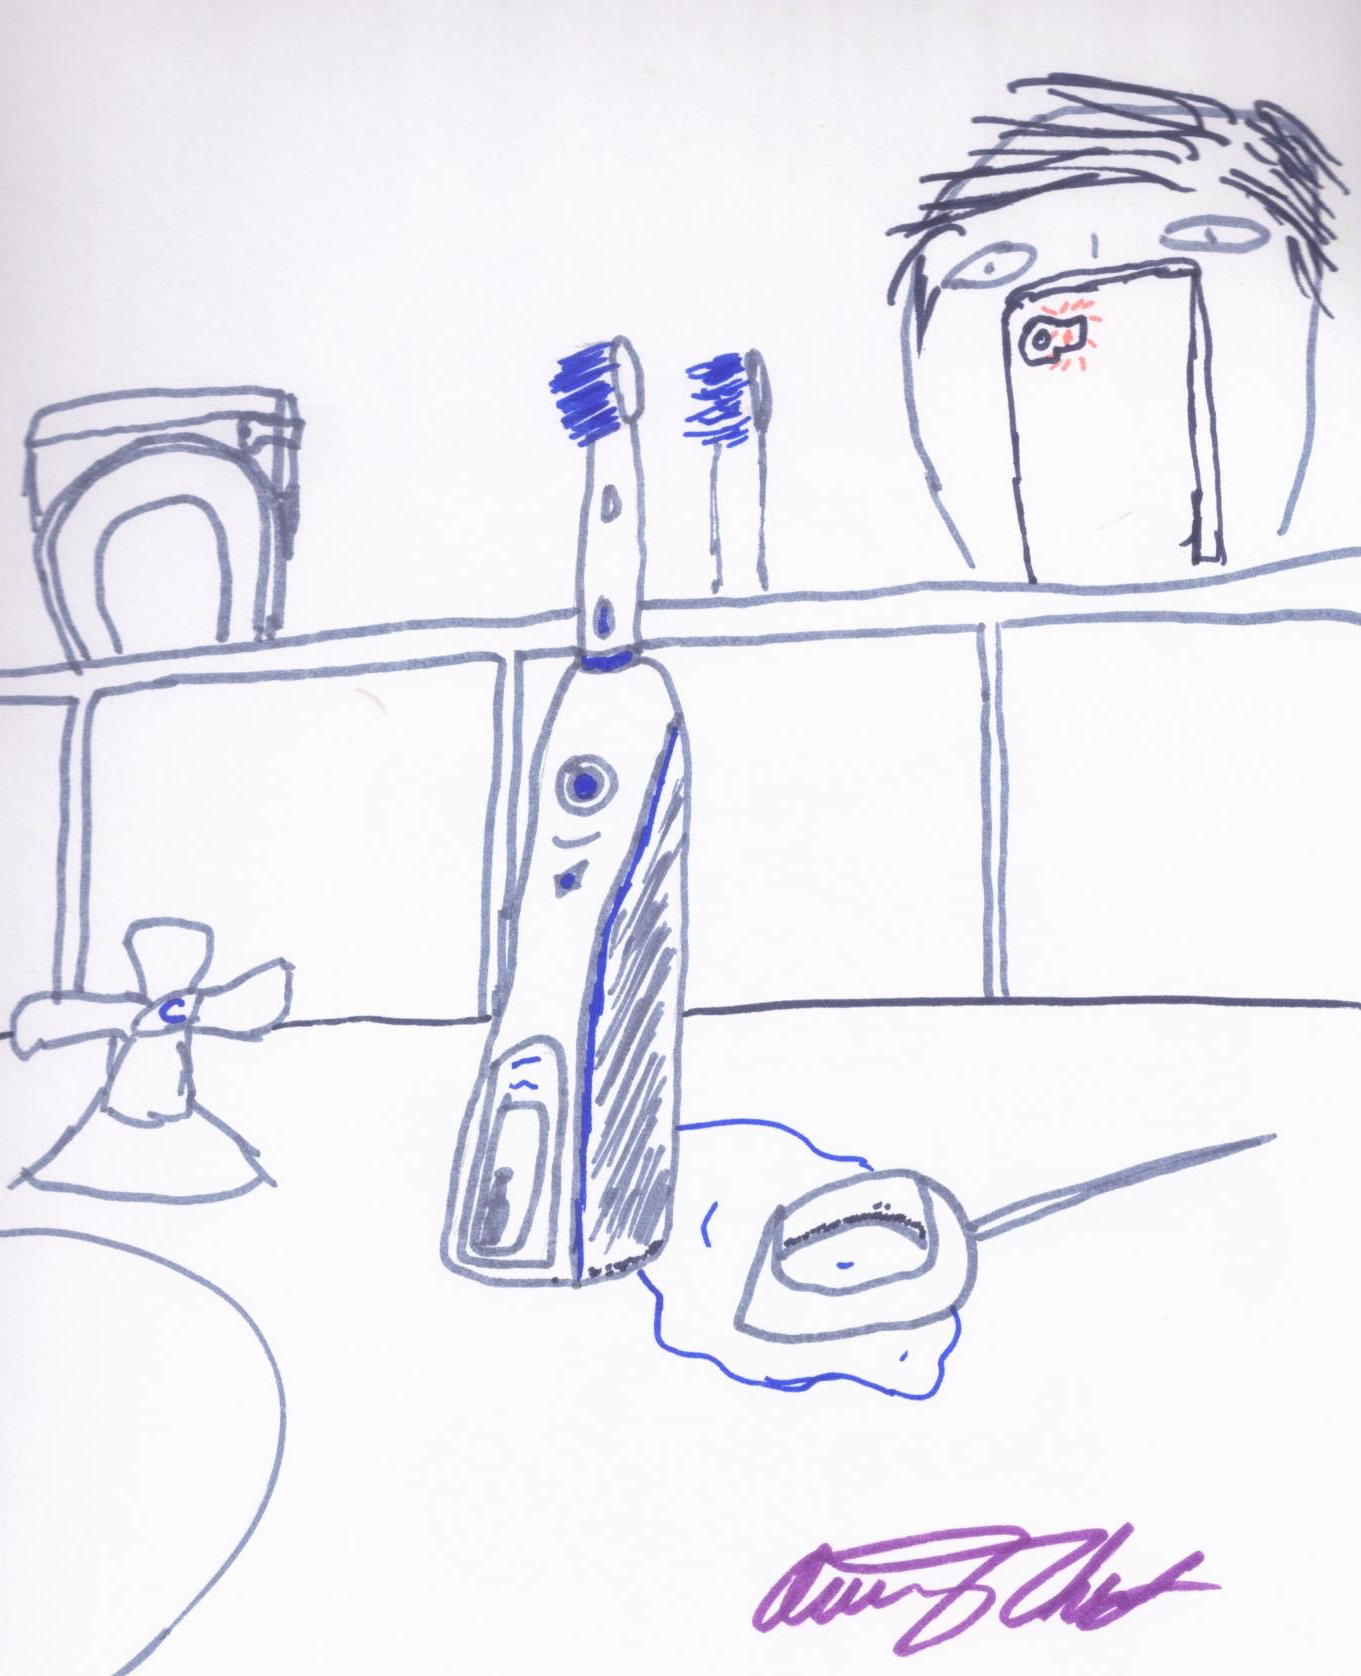 This is a photo I took of the electric toothbrush!